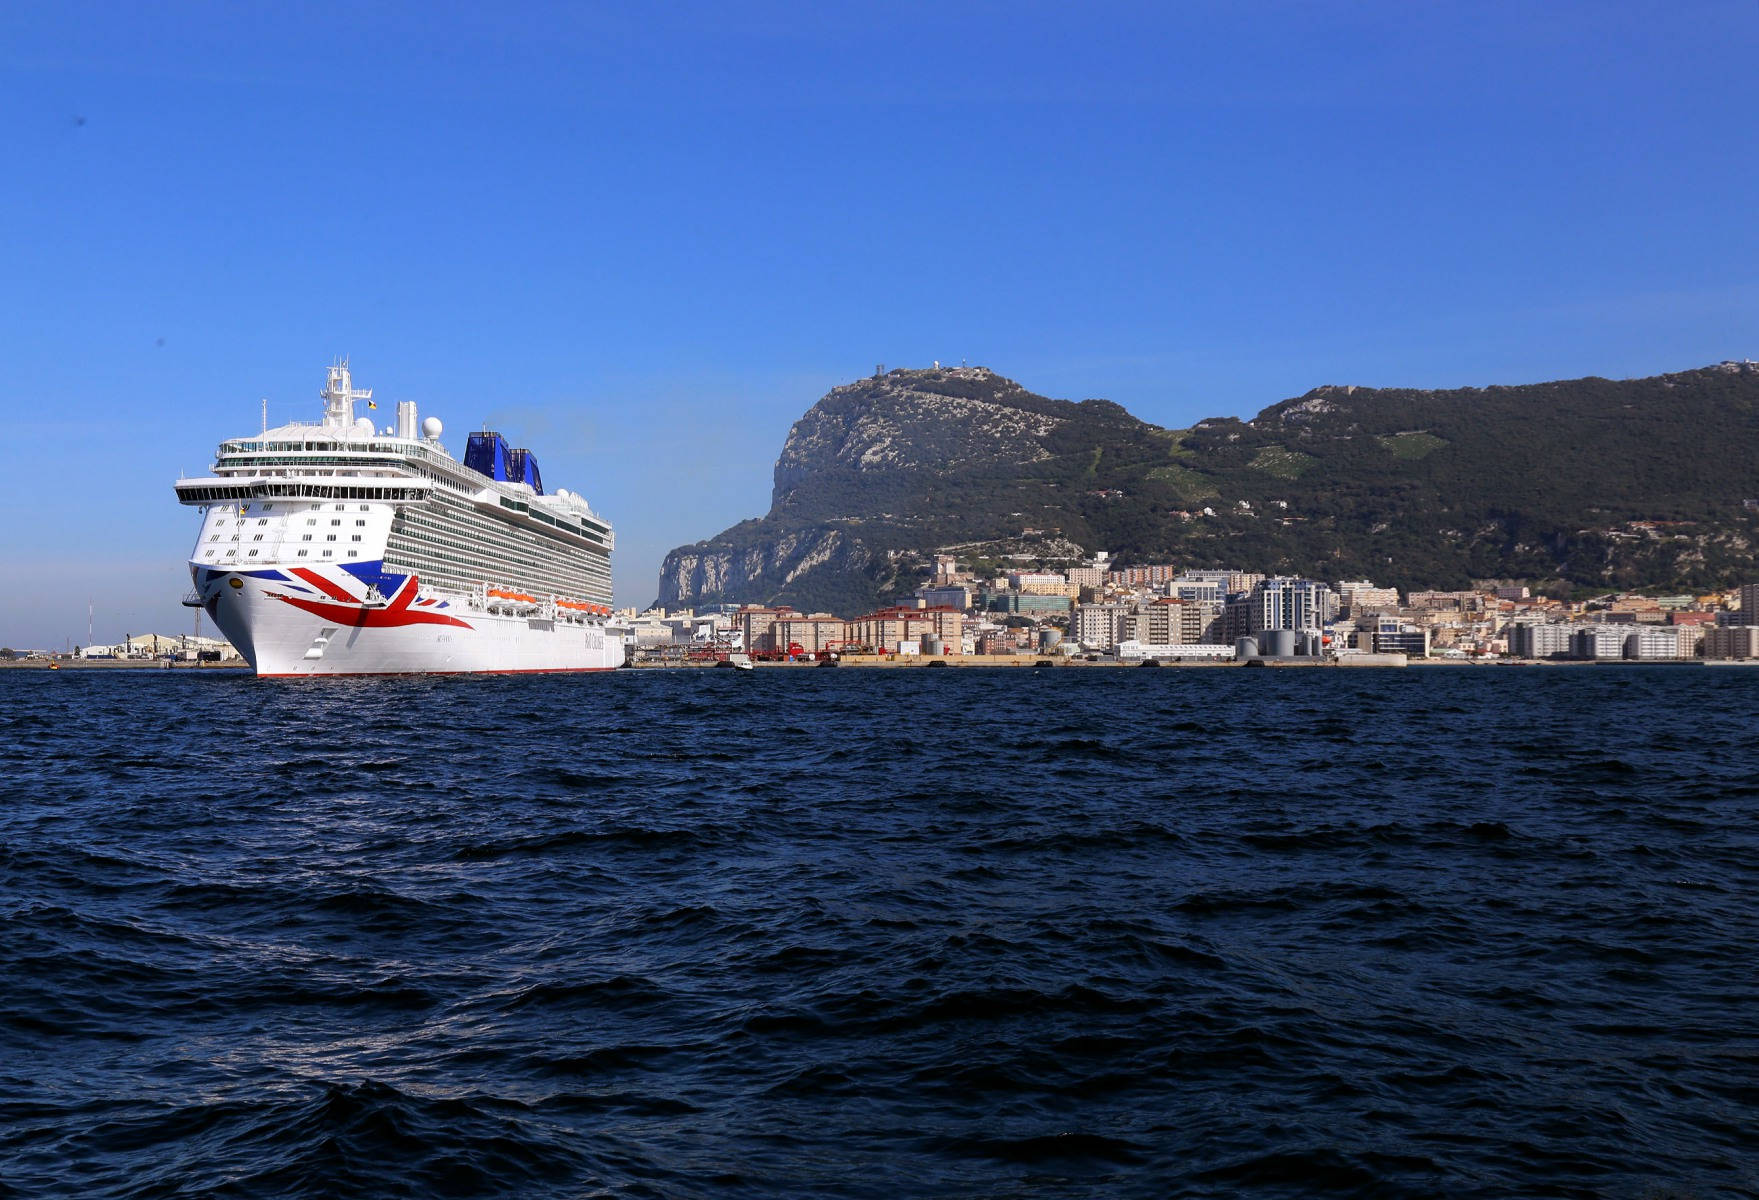 cruise-liners-9_25762305848_o